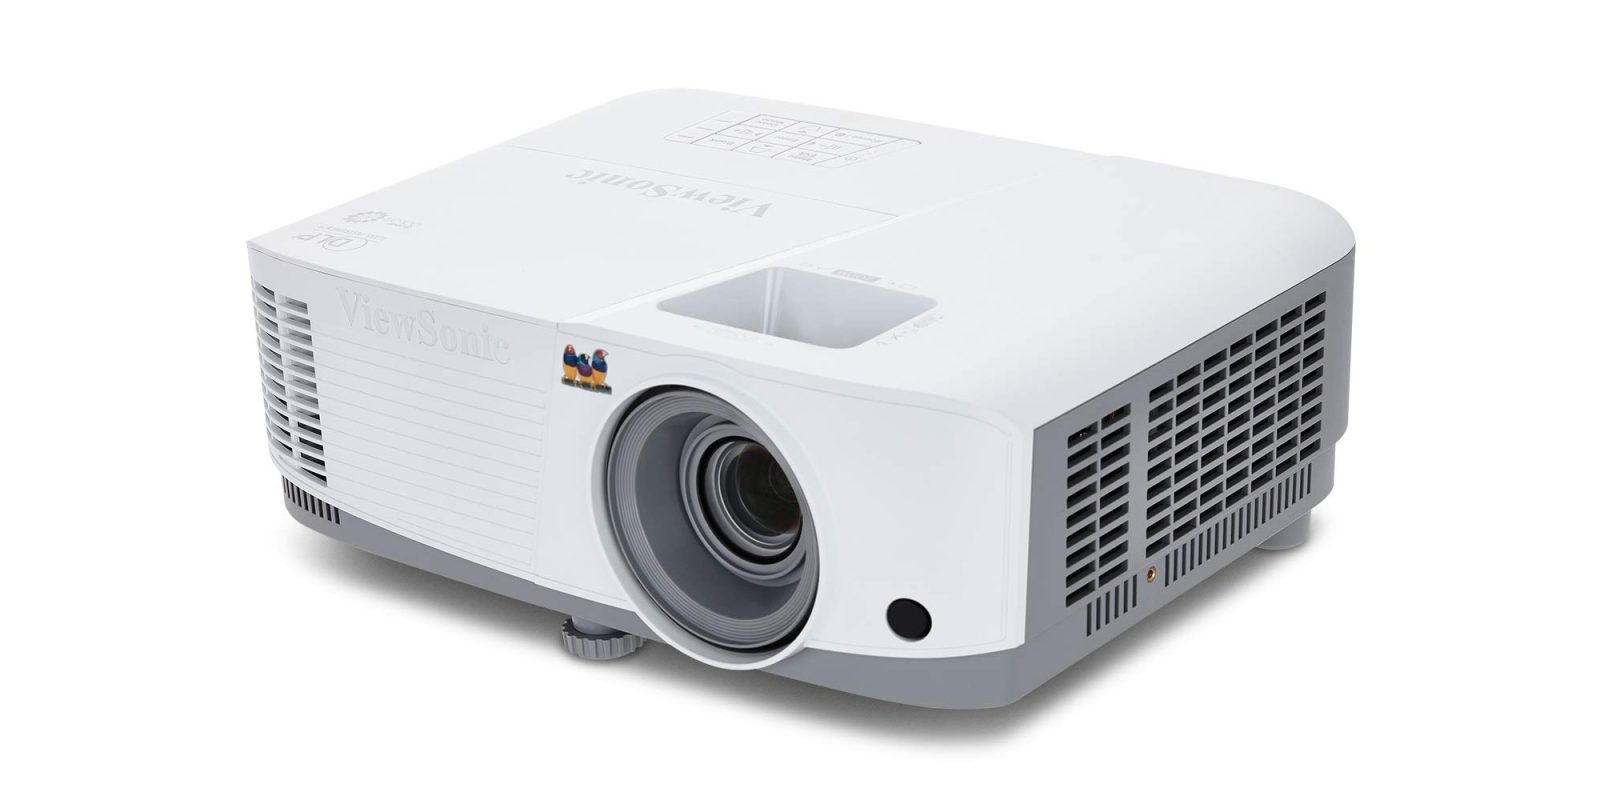 Bring ViewSonic's 1080p Projector to your home theater for $145 (Refurb, Orig. $300), more